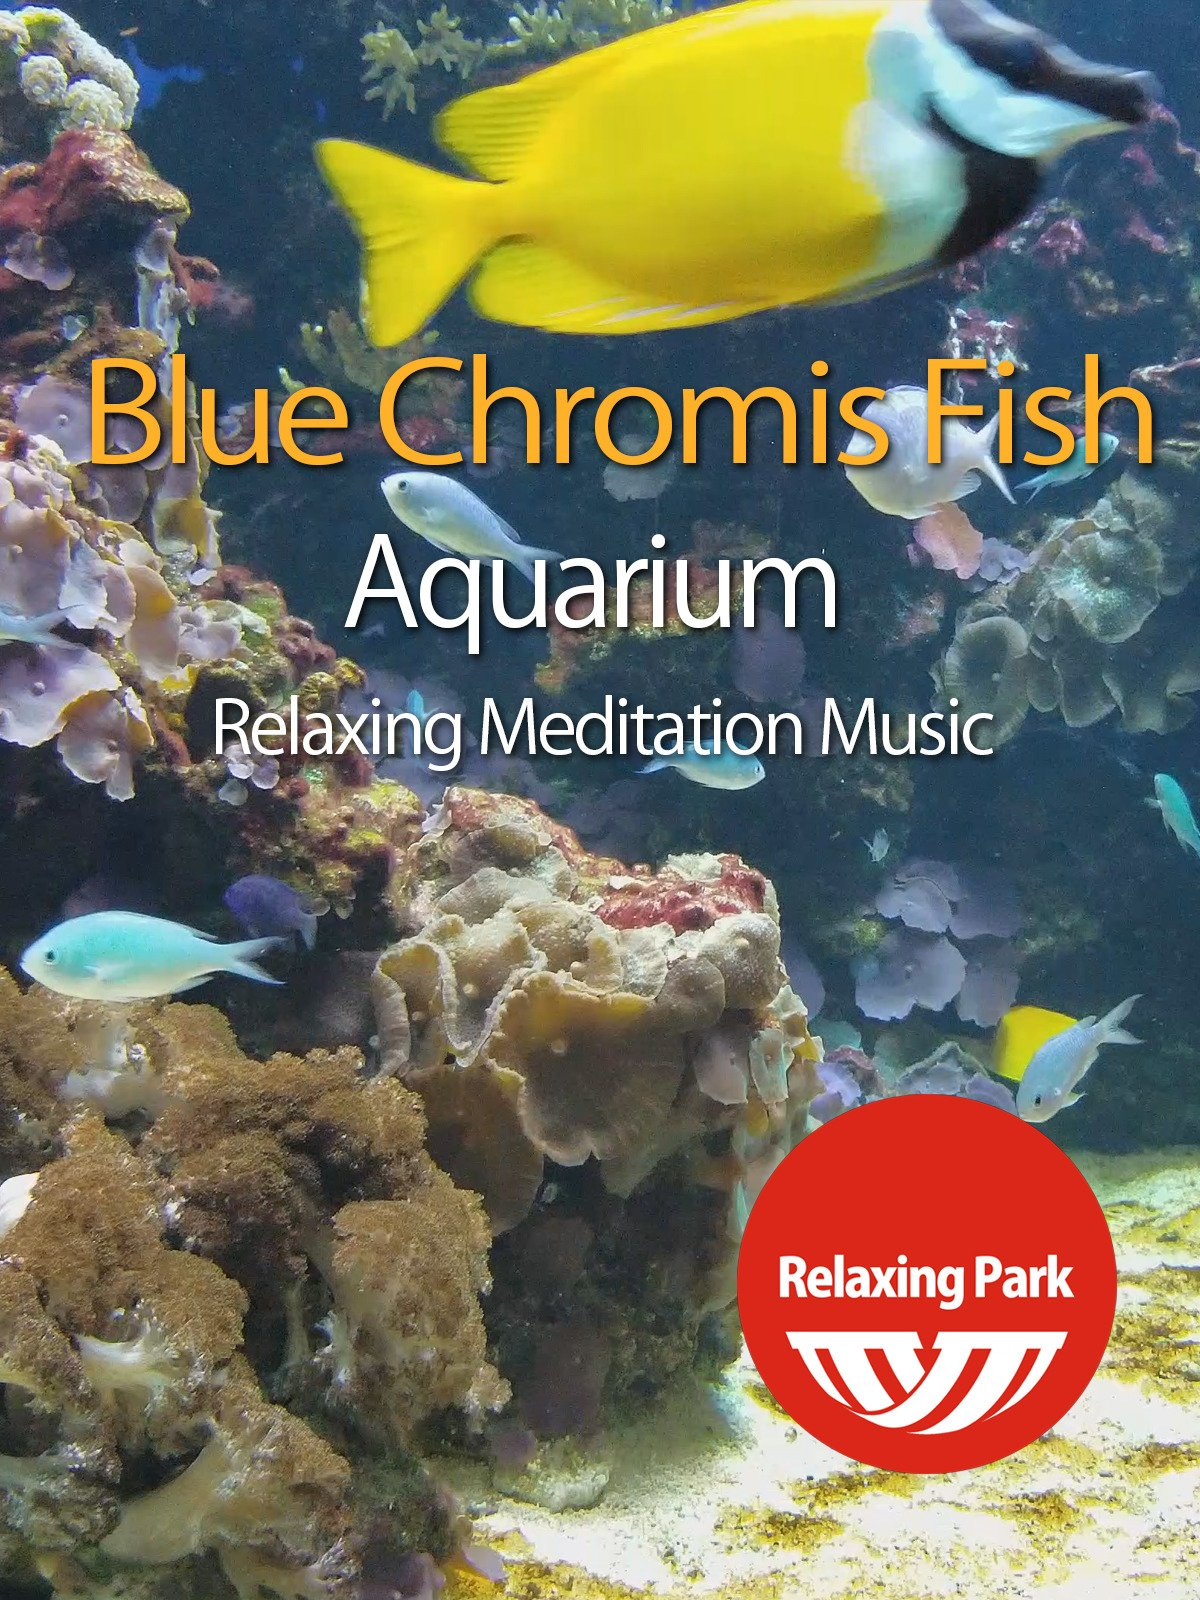 Blue Chromis Fish Aquarium with Relaxing Meditation Music on Amazon Prime Video UK